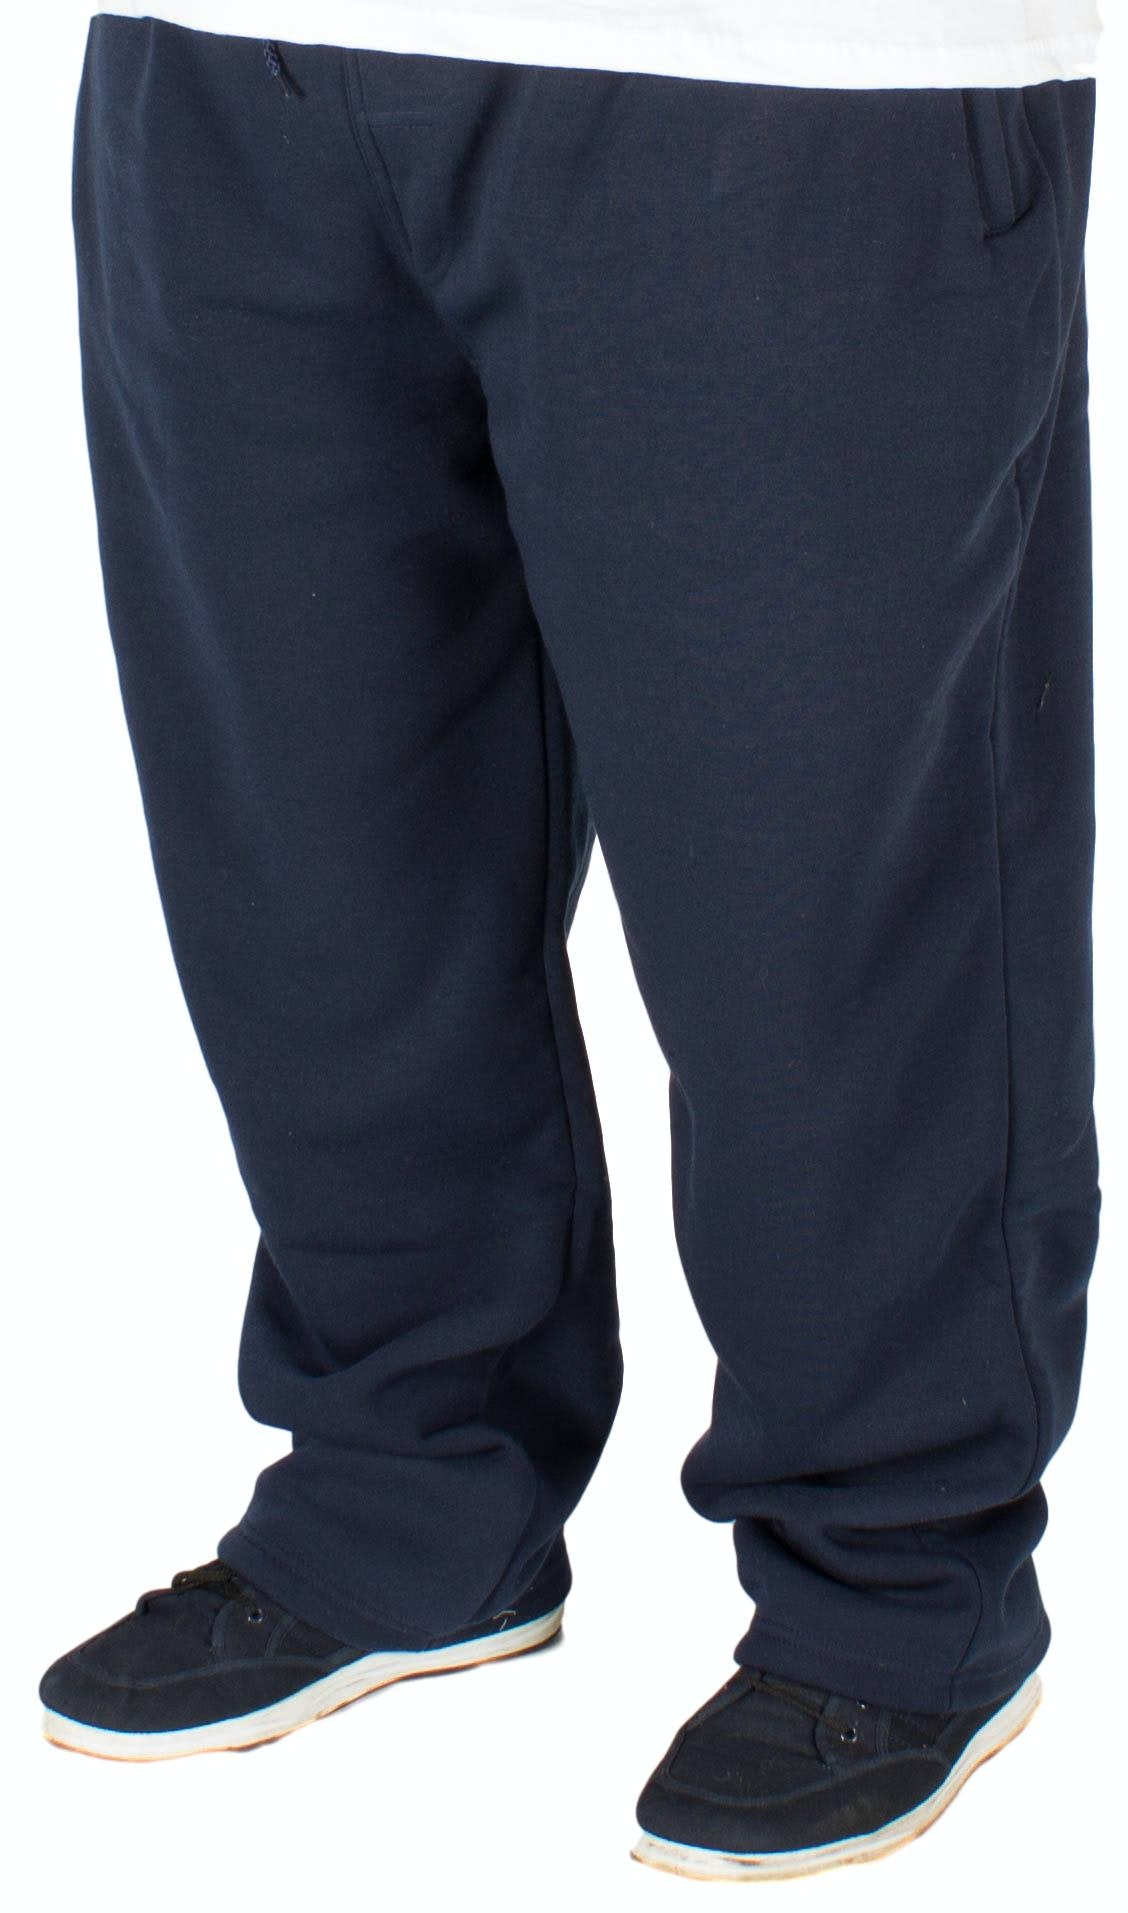 KAM Casual Jog Bottoms Navy Extra Tall